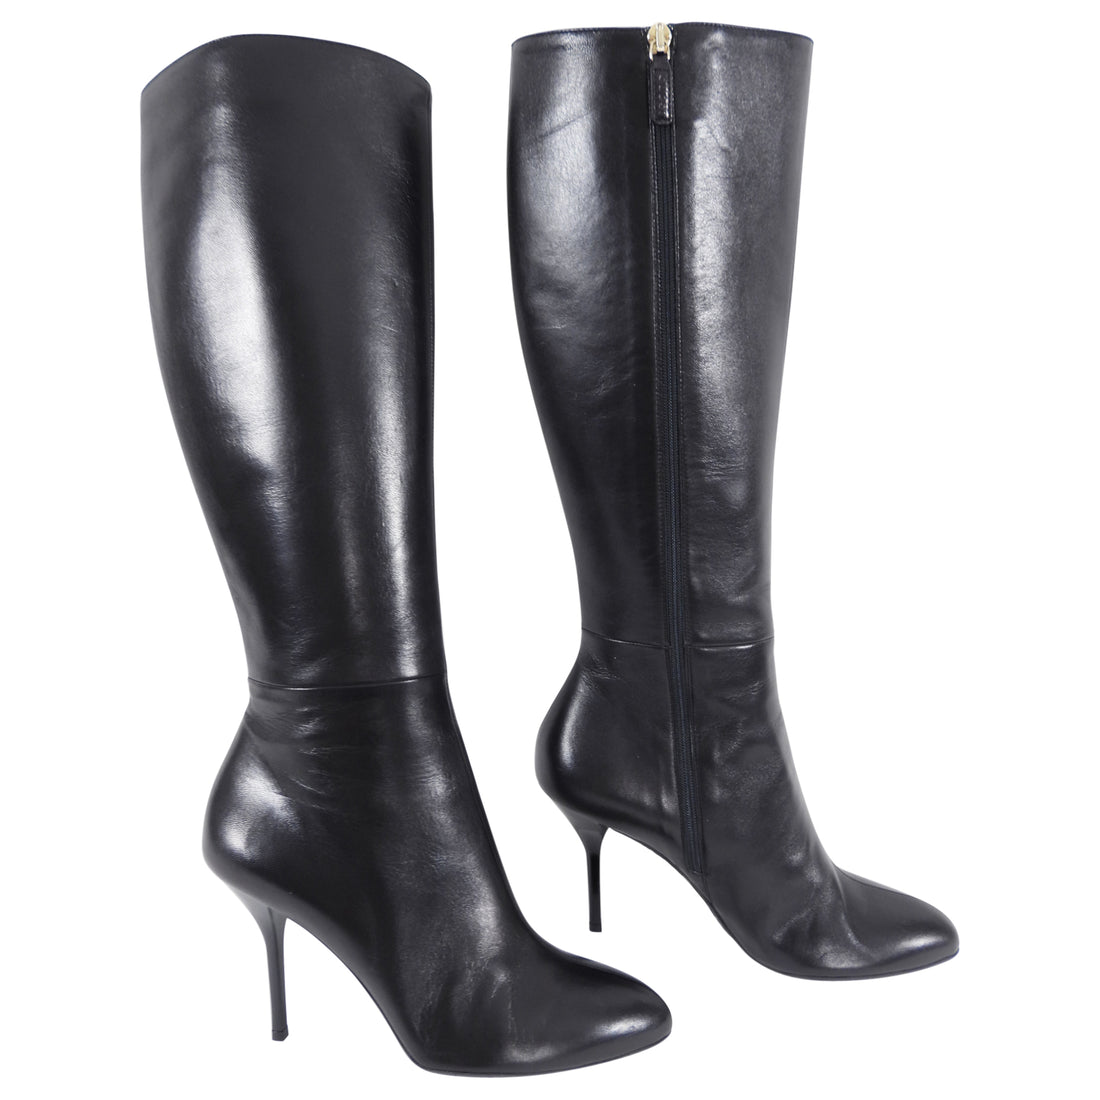 Gucci Black Leather Tall Boots with Stiletto High Heels - 39